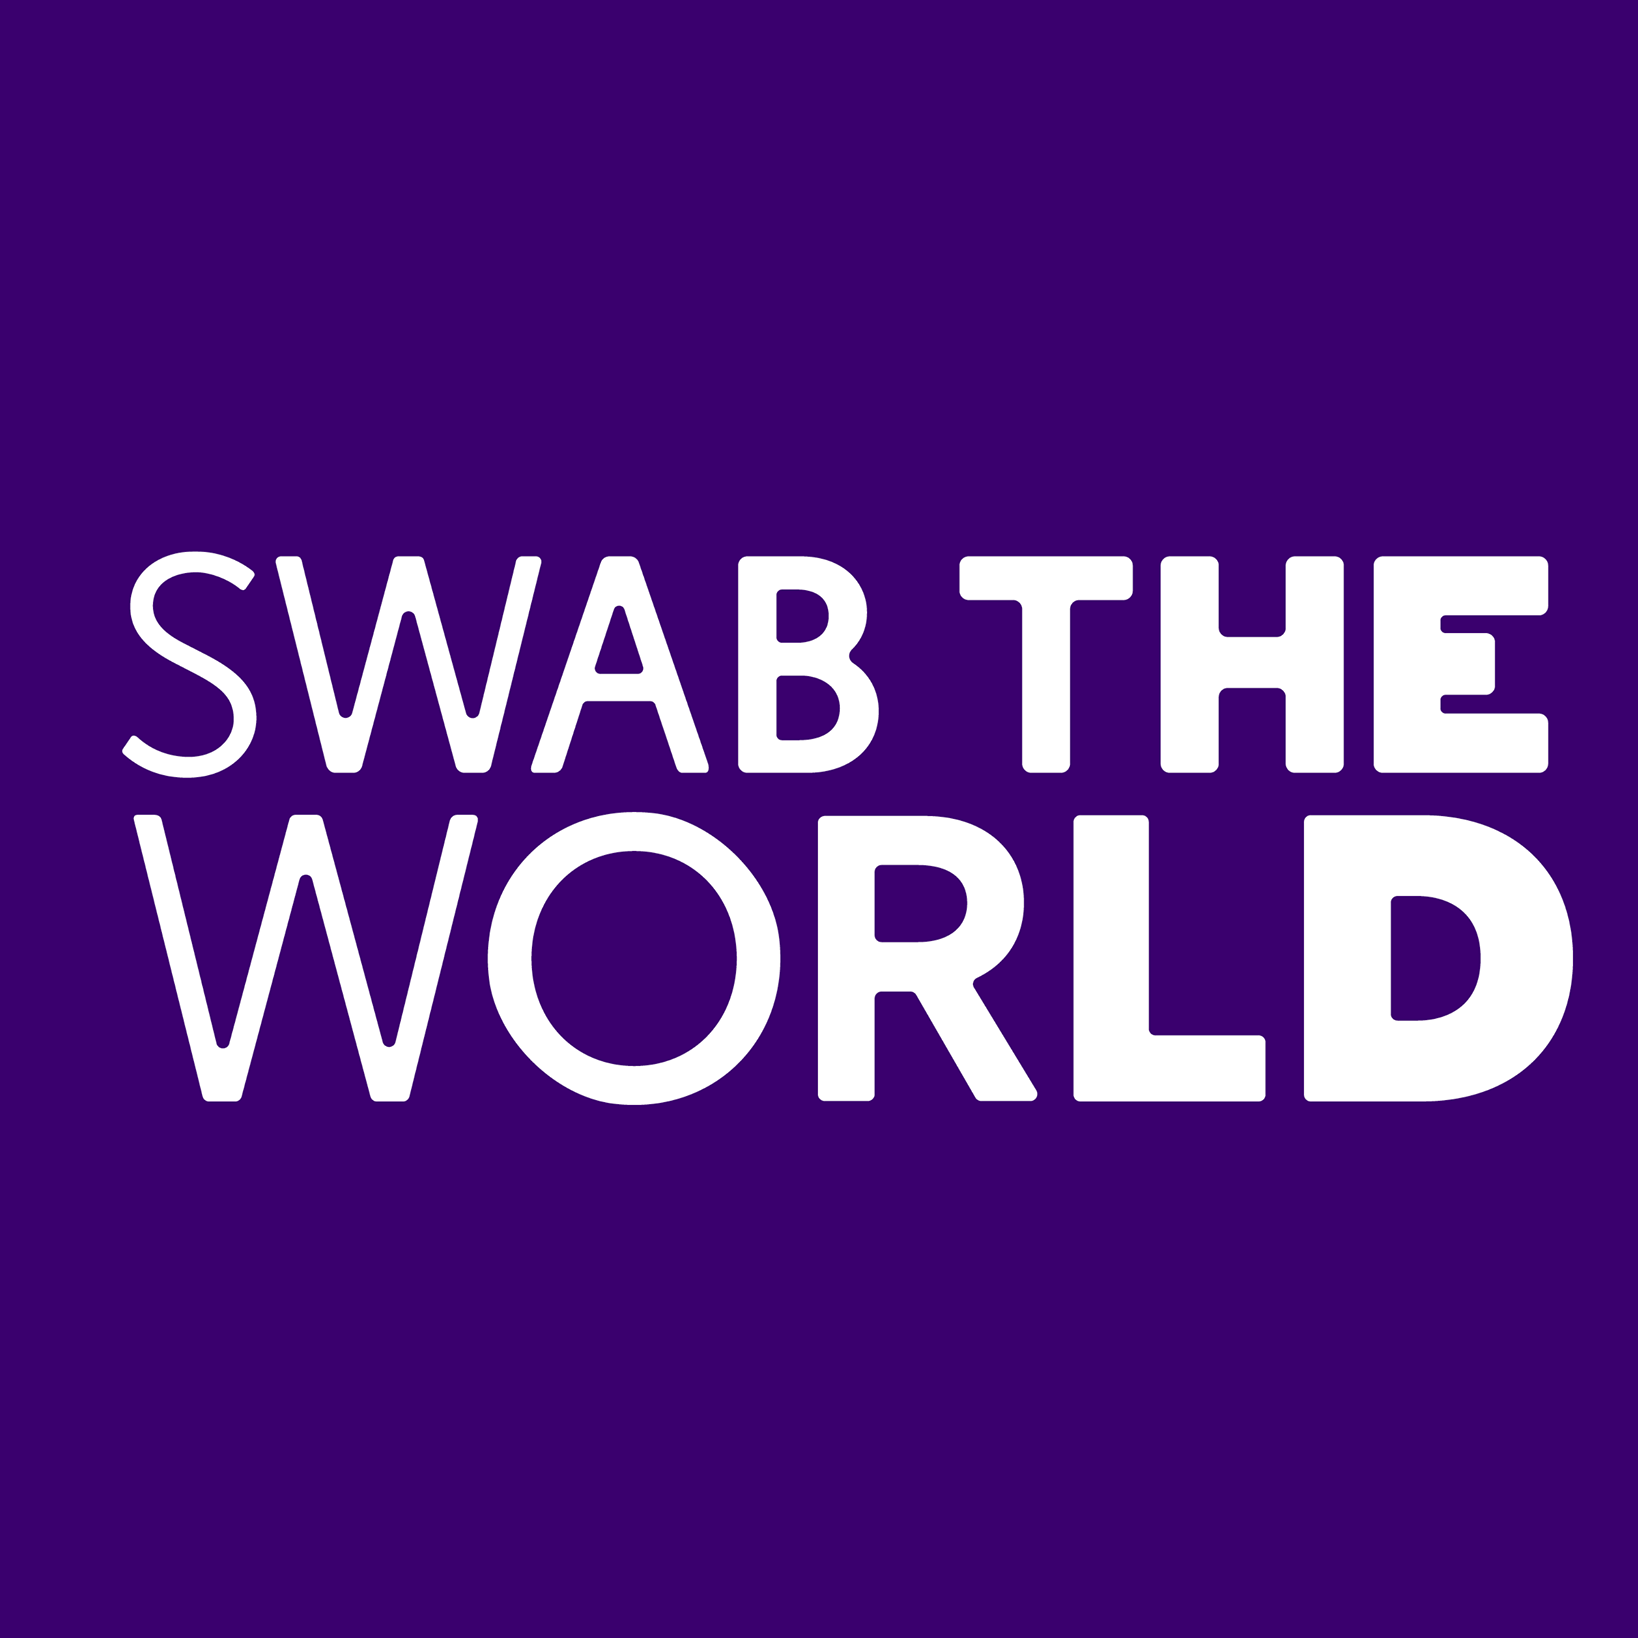 swab the world